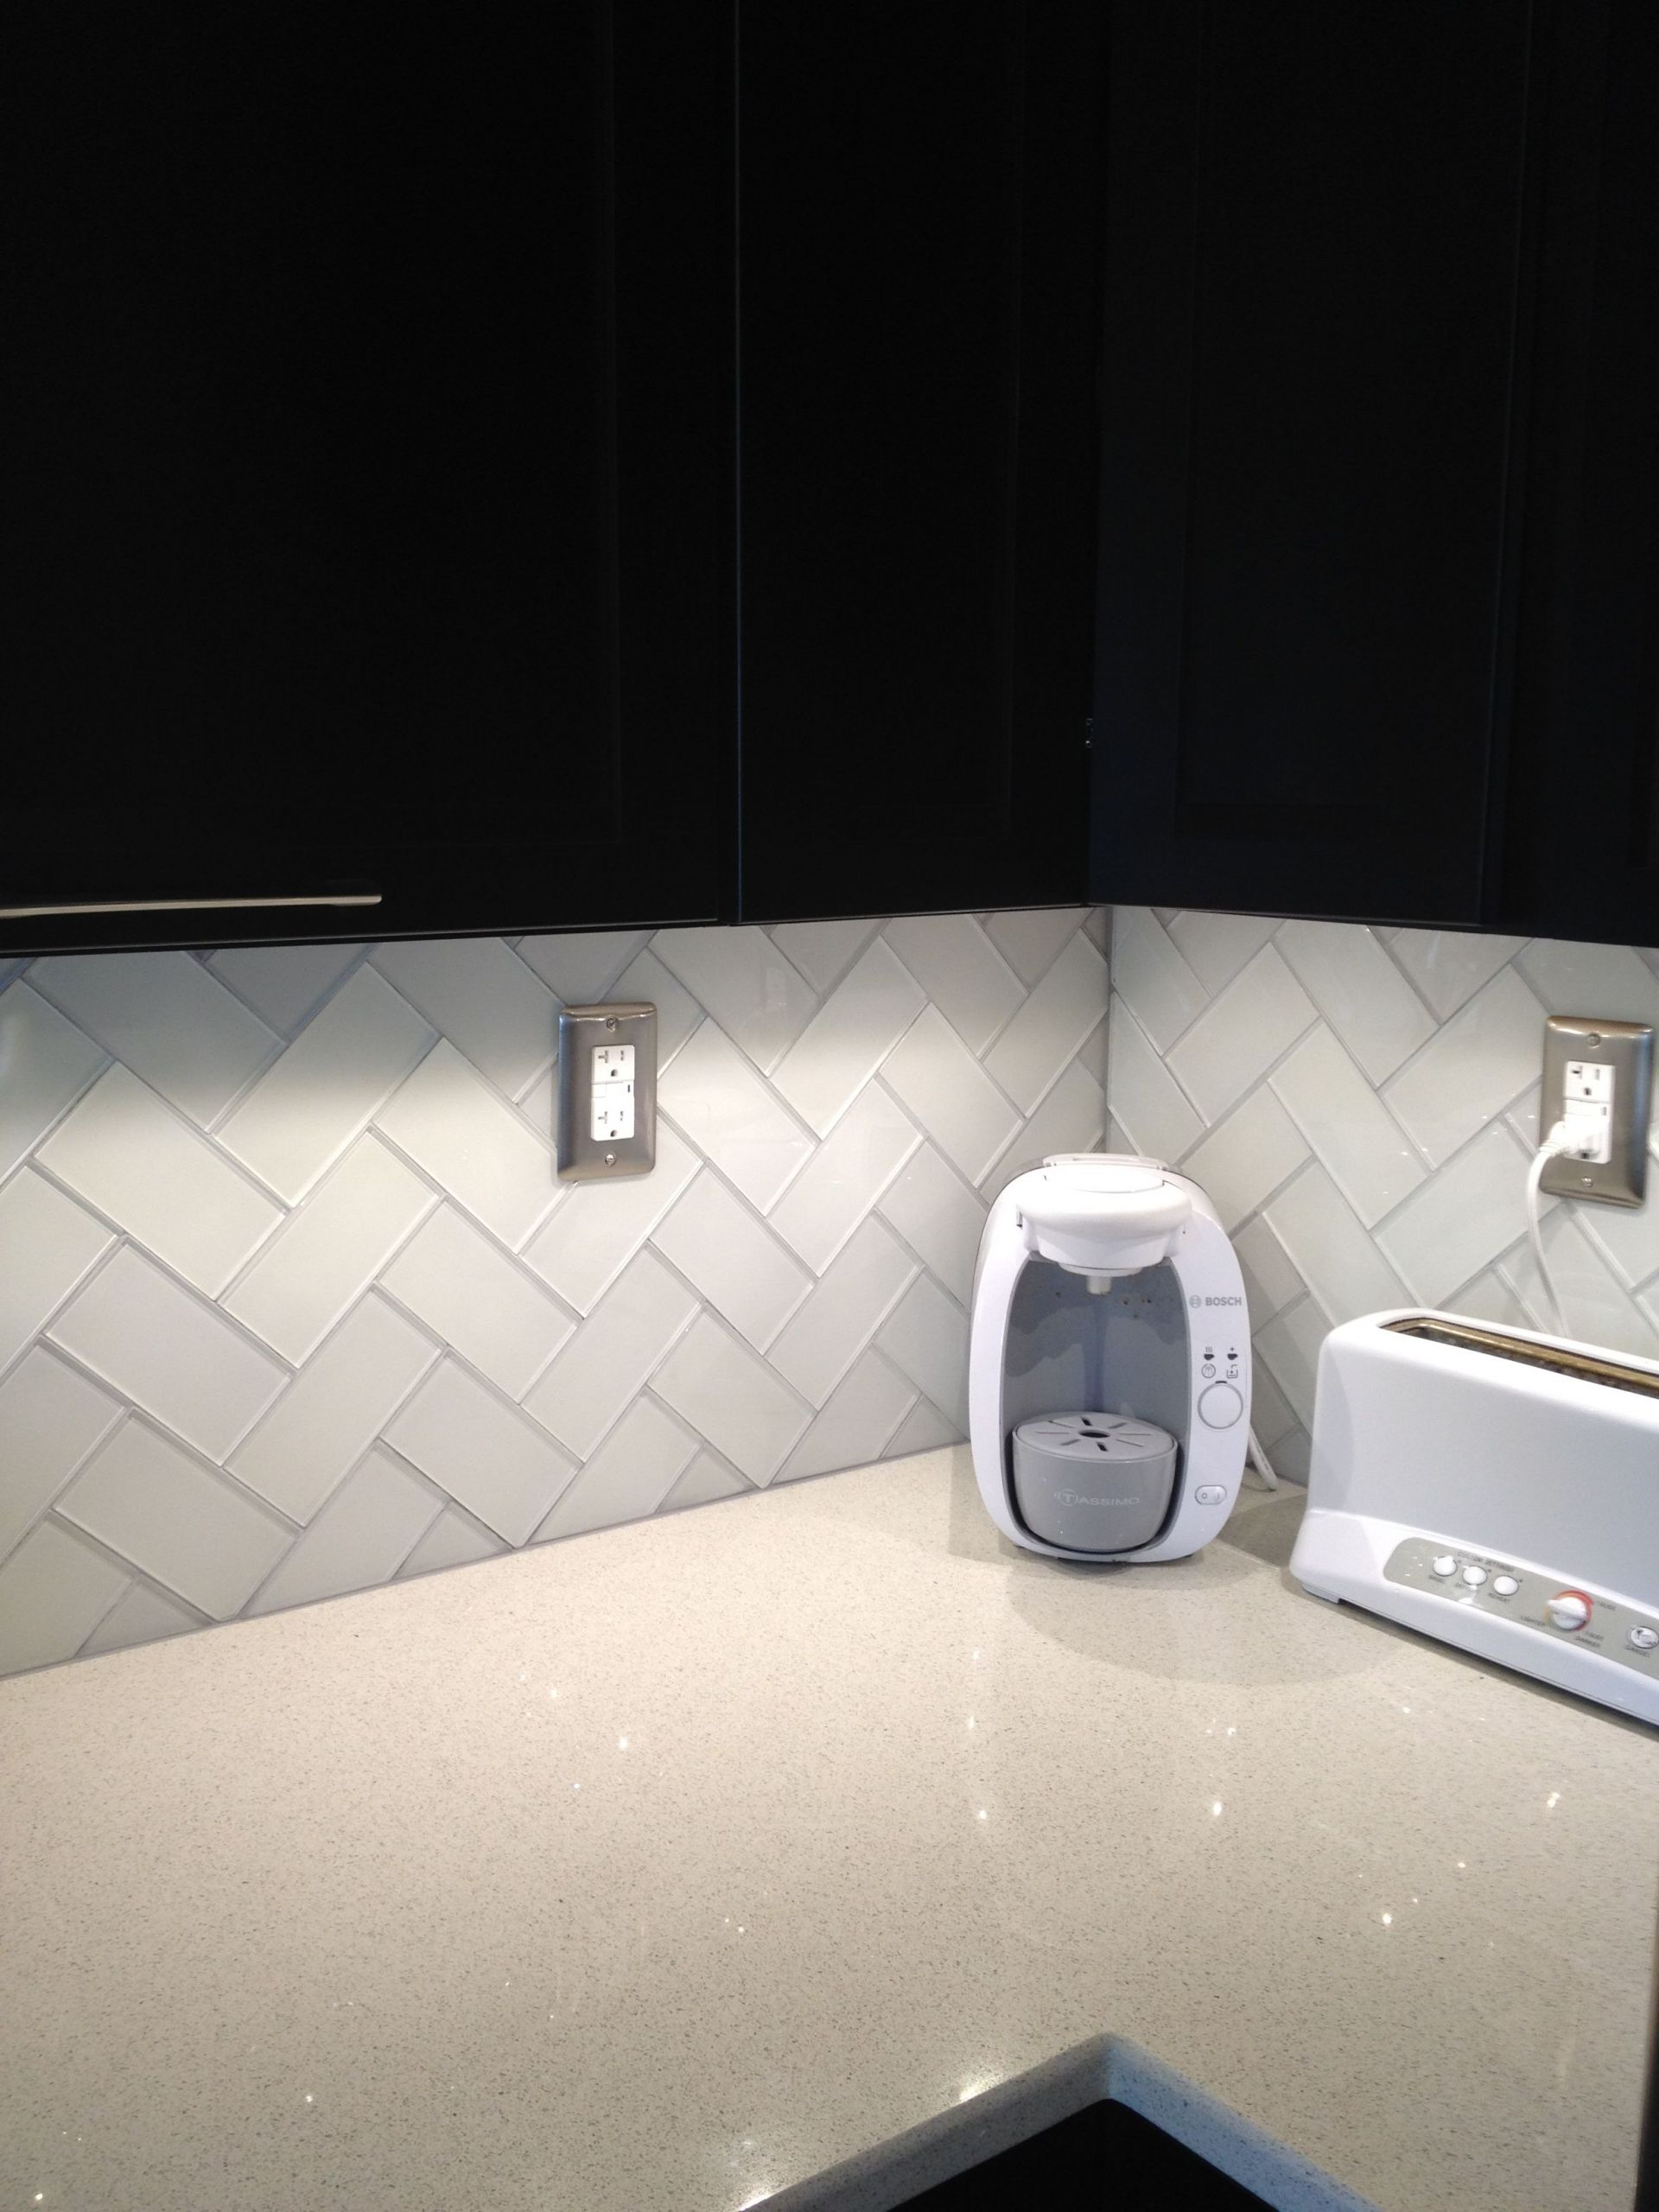 Subway Tile Herringbone Backsplash Elegant Herringbone Pattern White Glass Subway Tile Added Delorean